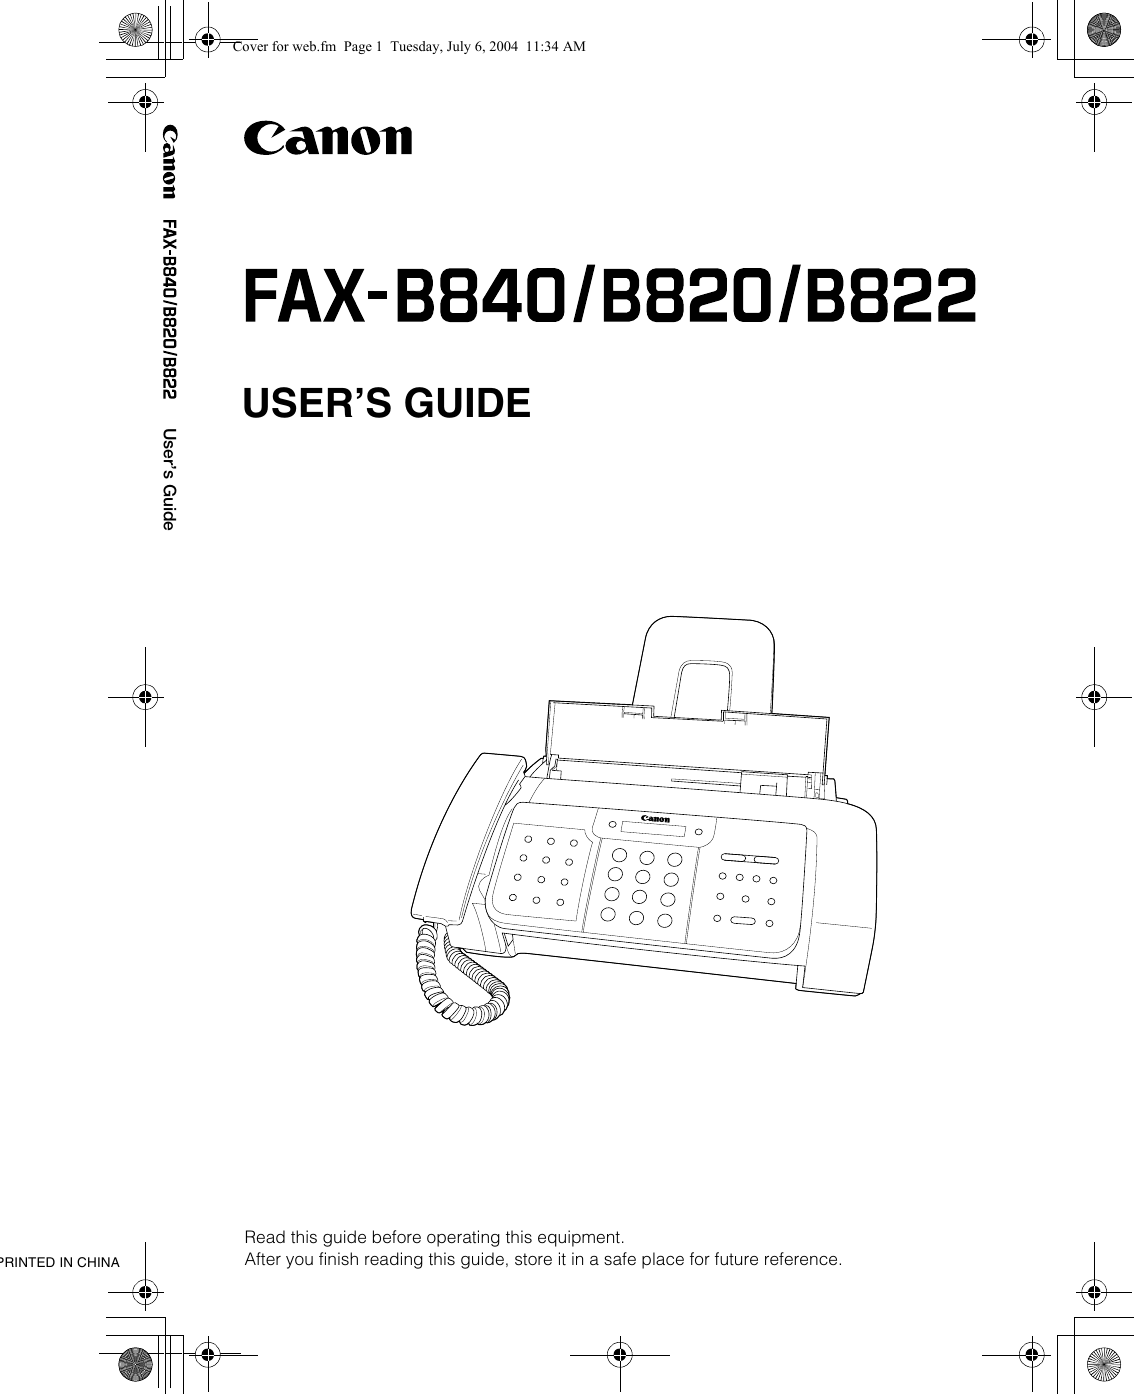 Canon B820 Users Manual FAX B840/B820/B822 Guide